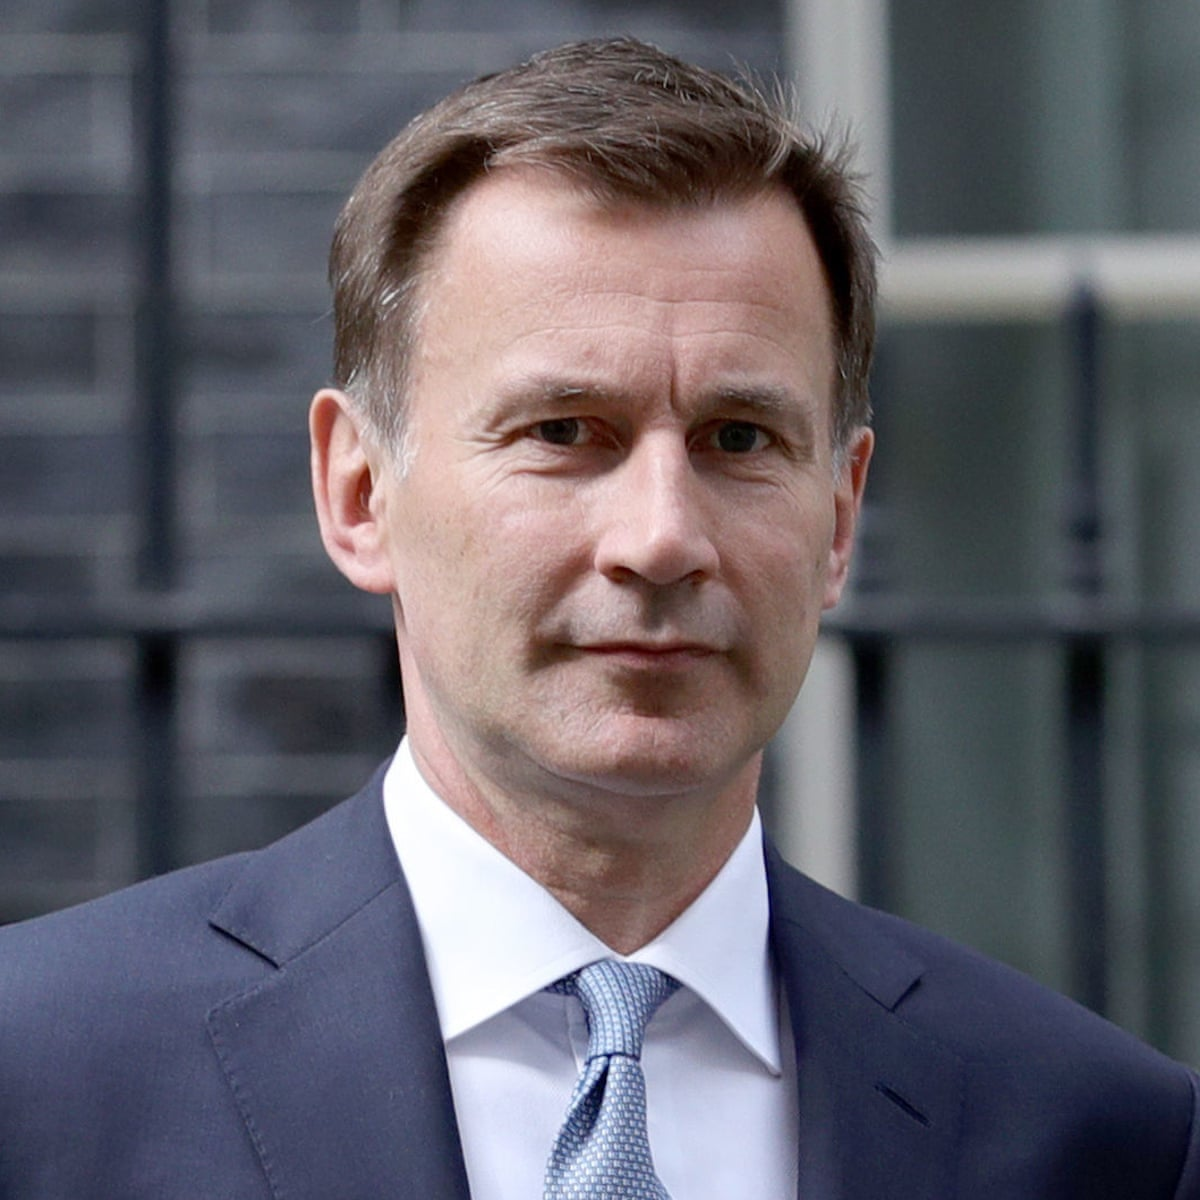 Drug Advisory Panel Candidate Was Blocked After Criticism Of Hunt Drugs Policy The Guardian